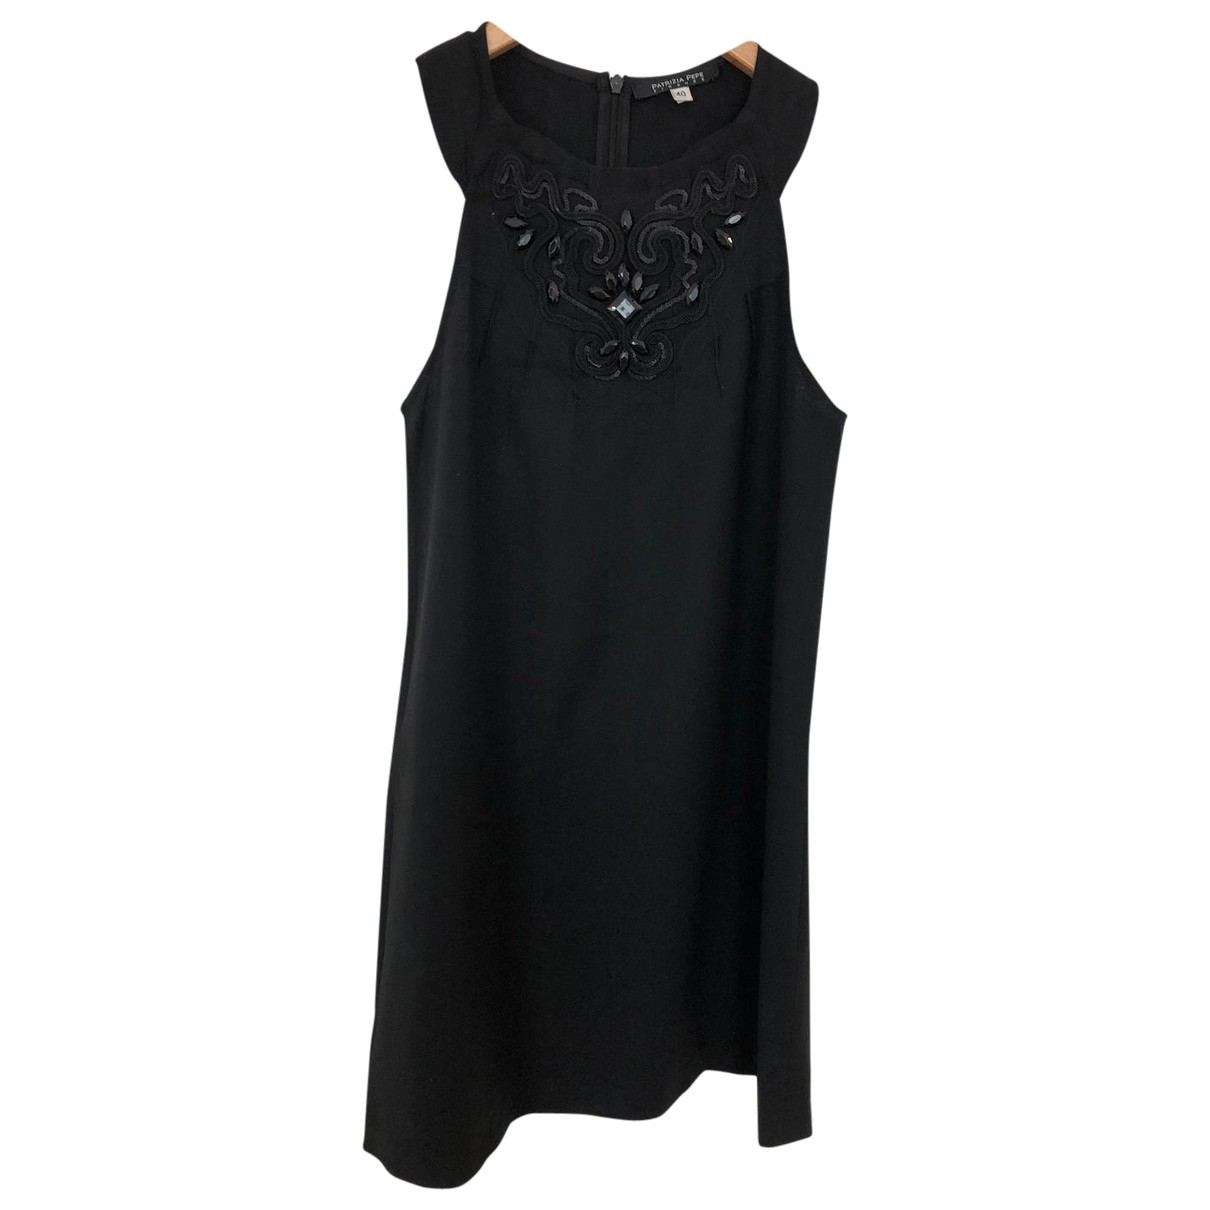 Patrizia Pepe \N Black Wool dress for Women 40 IT